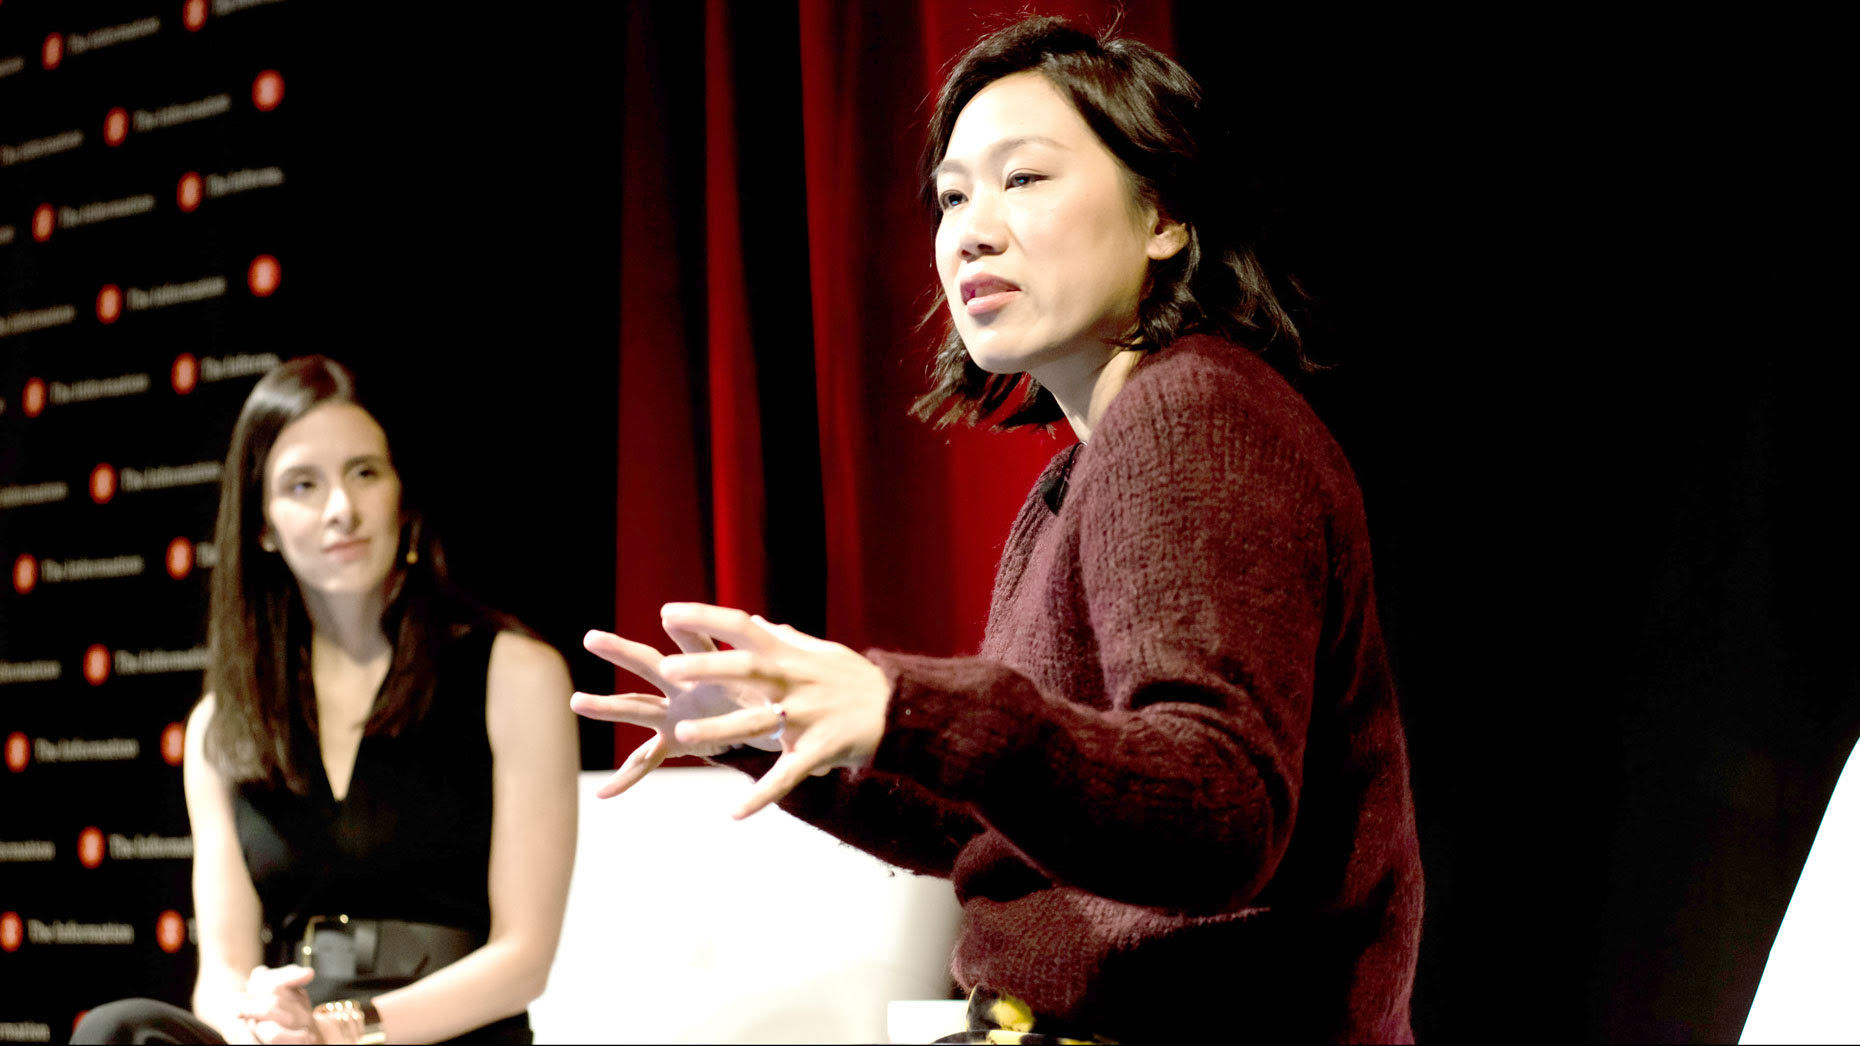 The Information founder Jessica Lessin interviews CZI's Priscilla Chan. Photo: Angie Silvy